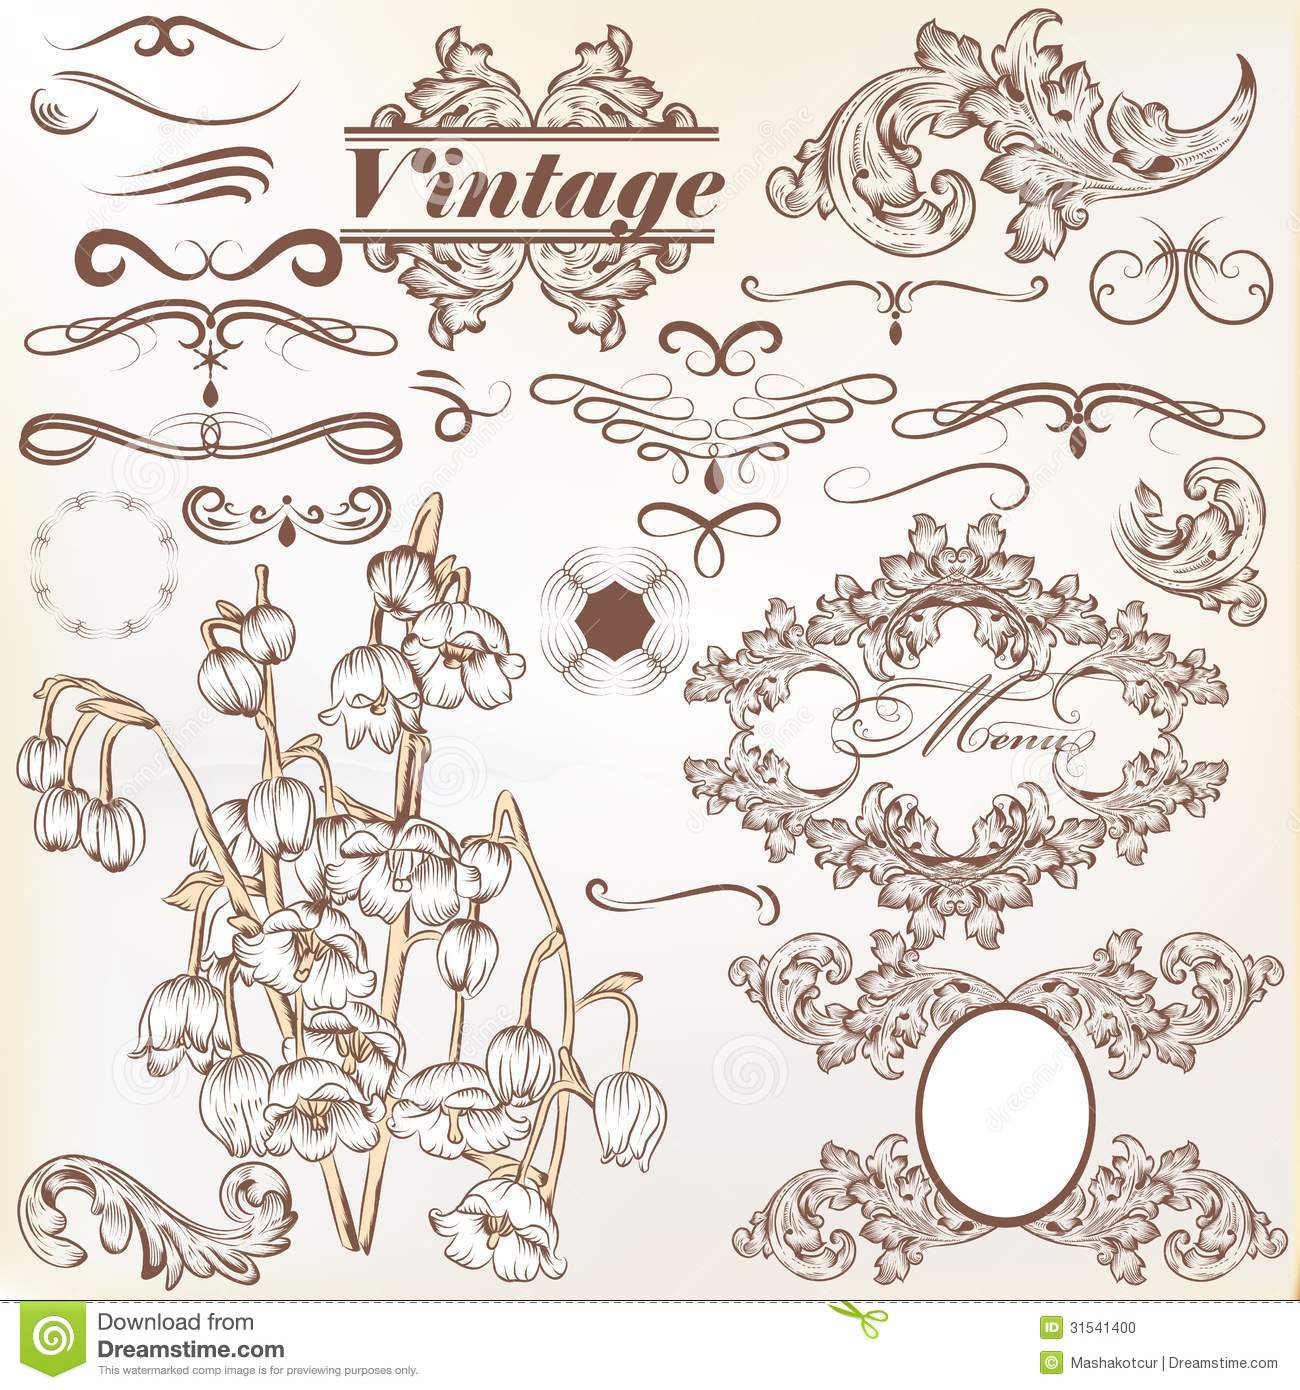 Vintage Book Cover Design Vector Free Download : Vector set of calligraphic vintage elements and page